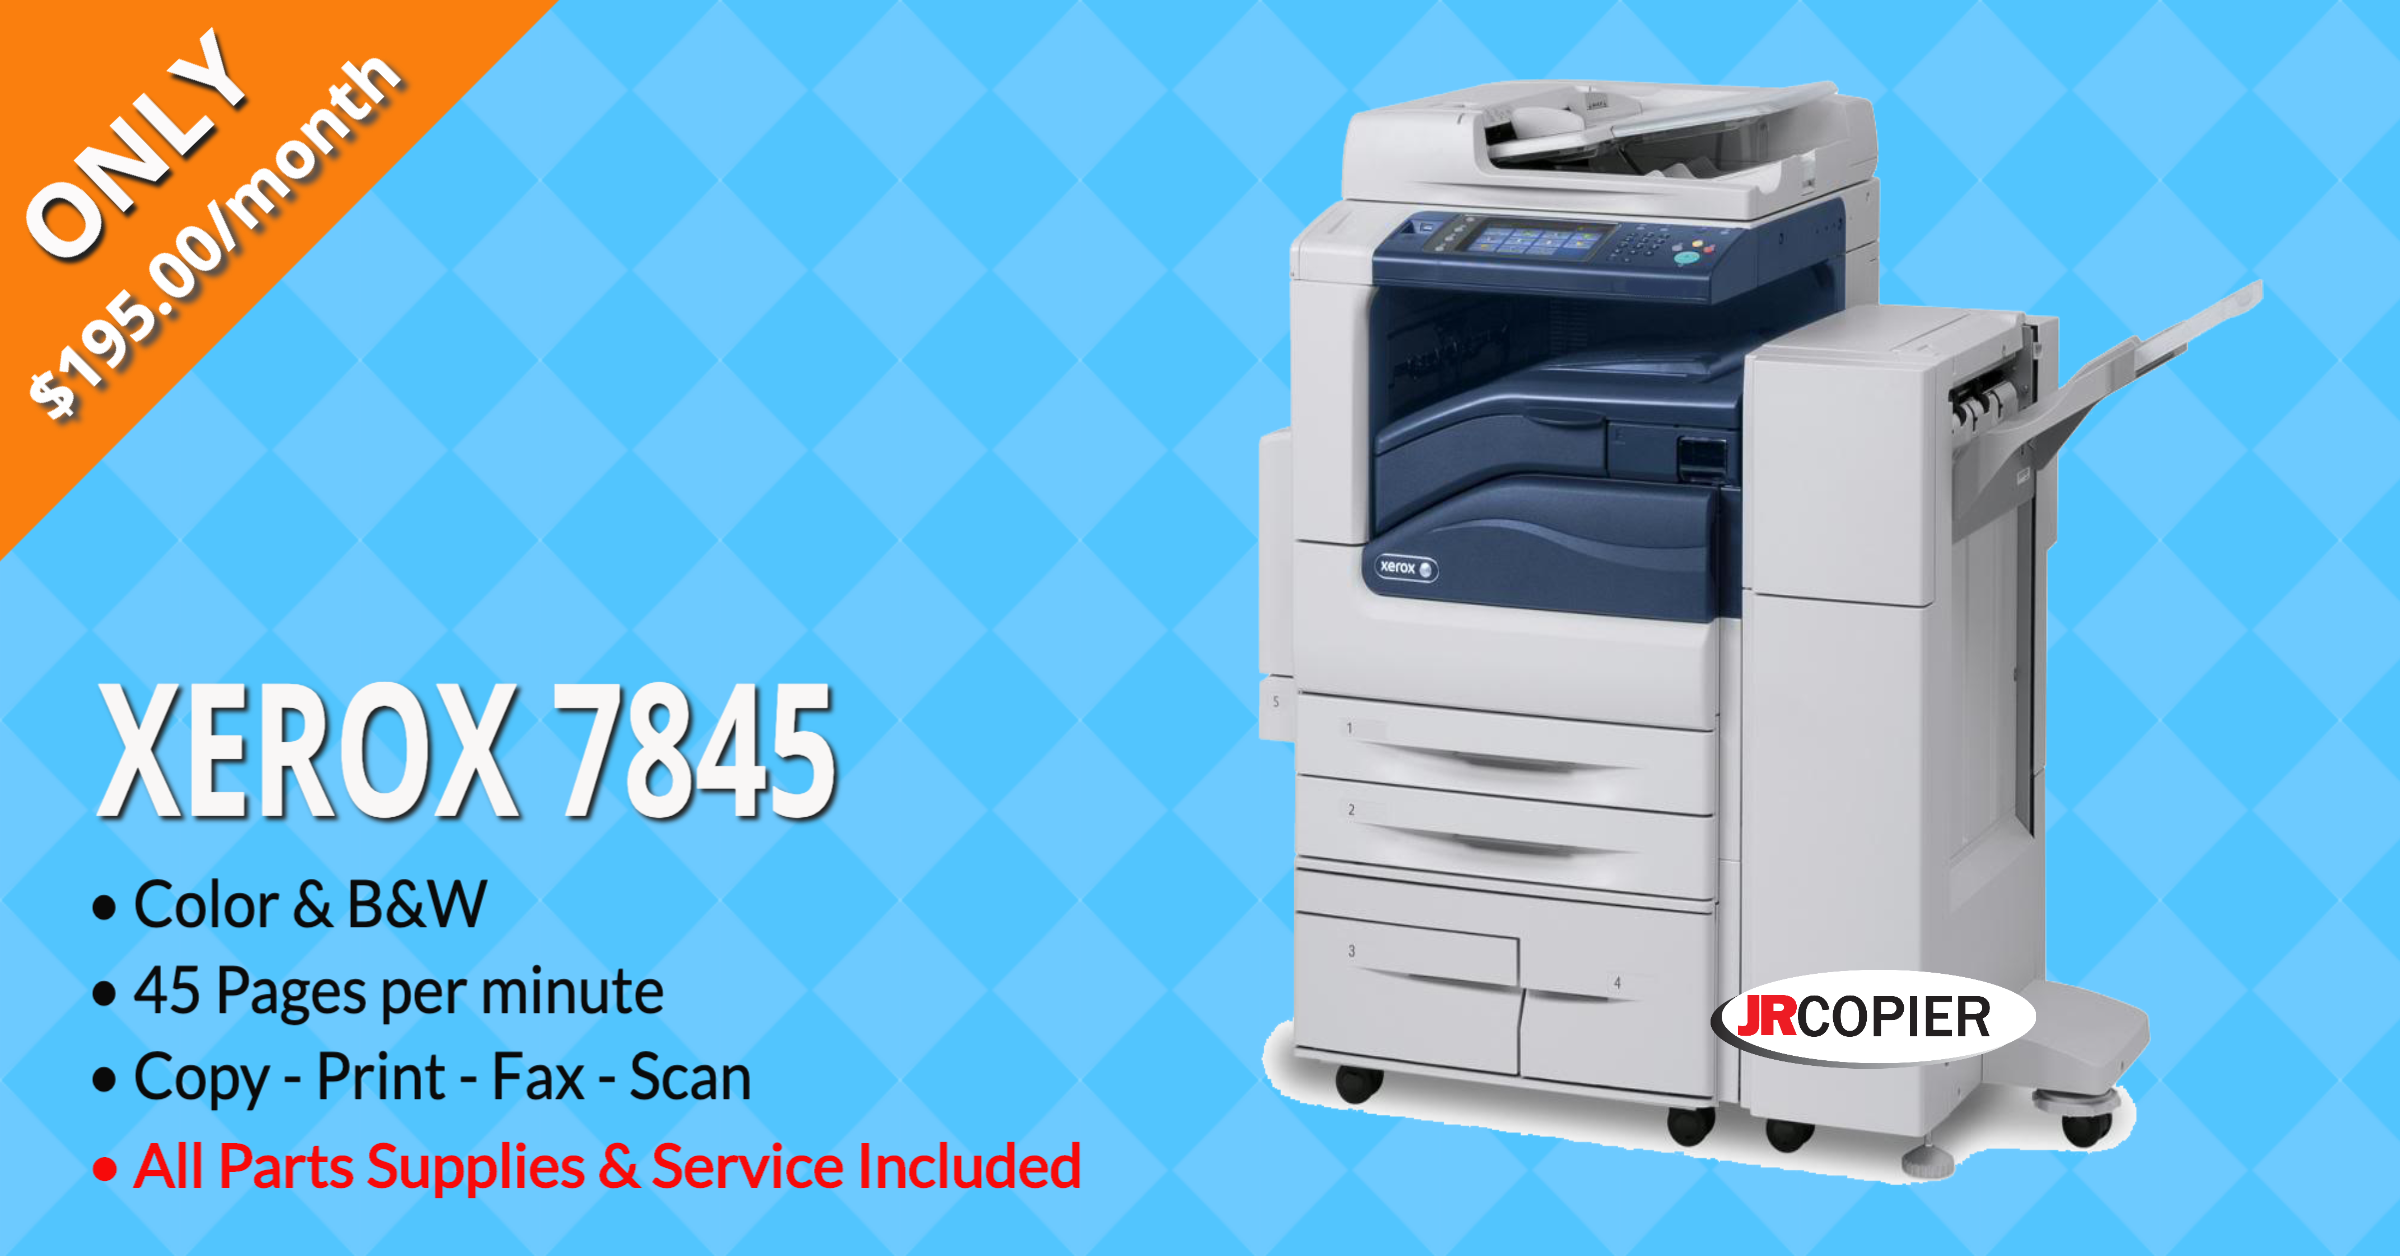 Office Printer Rental 49501, 49502, 49503, 49504, 49505, 49506, 49507, 49508, 49509, 49510, 49512, 49514, 49515, 49516, 49518, 49523, 49525, 49530, 49534, 49544, 49546, 49548, 49550, 49555, 49560, 49588, 49599